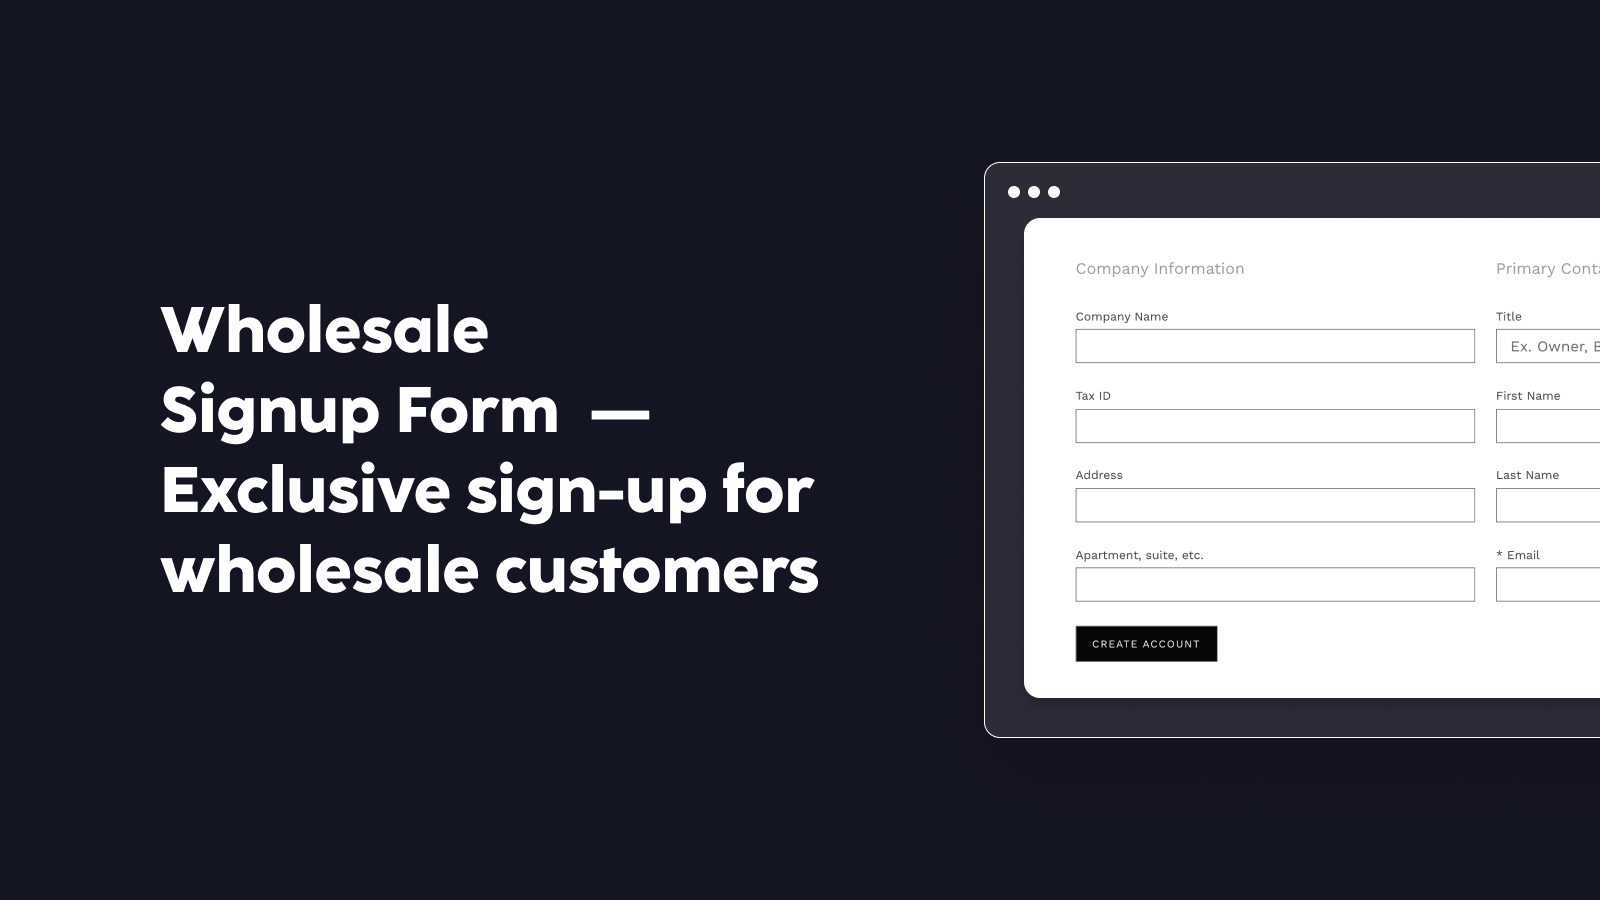 Exclusive sign-up for wholesale customers